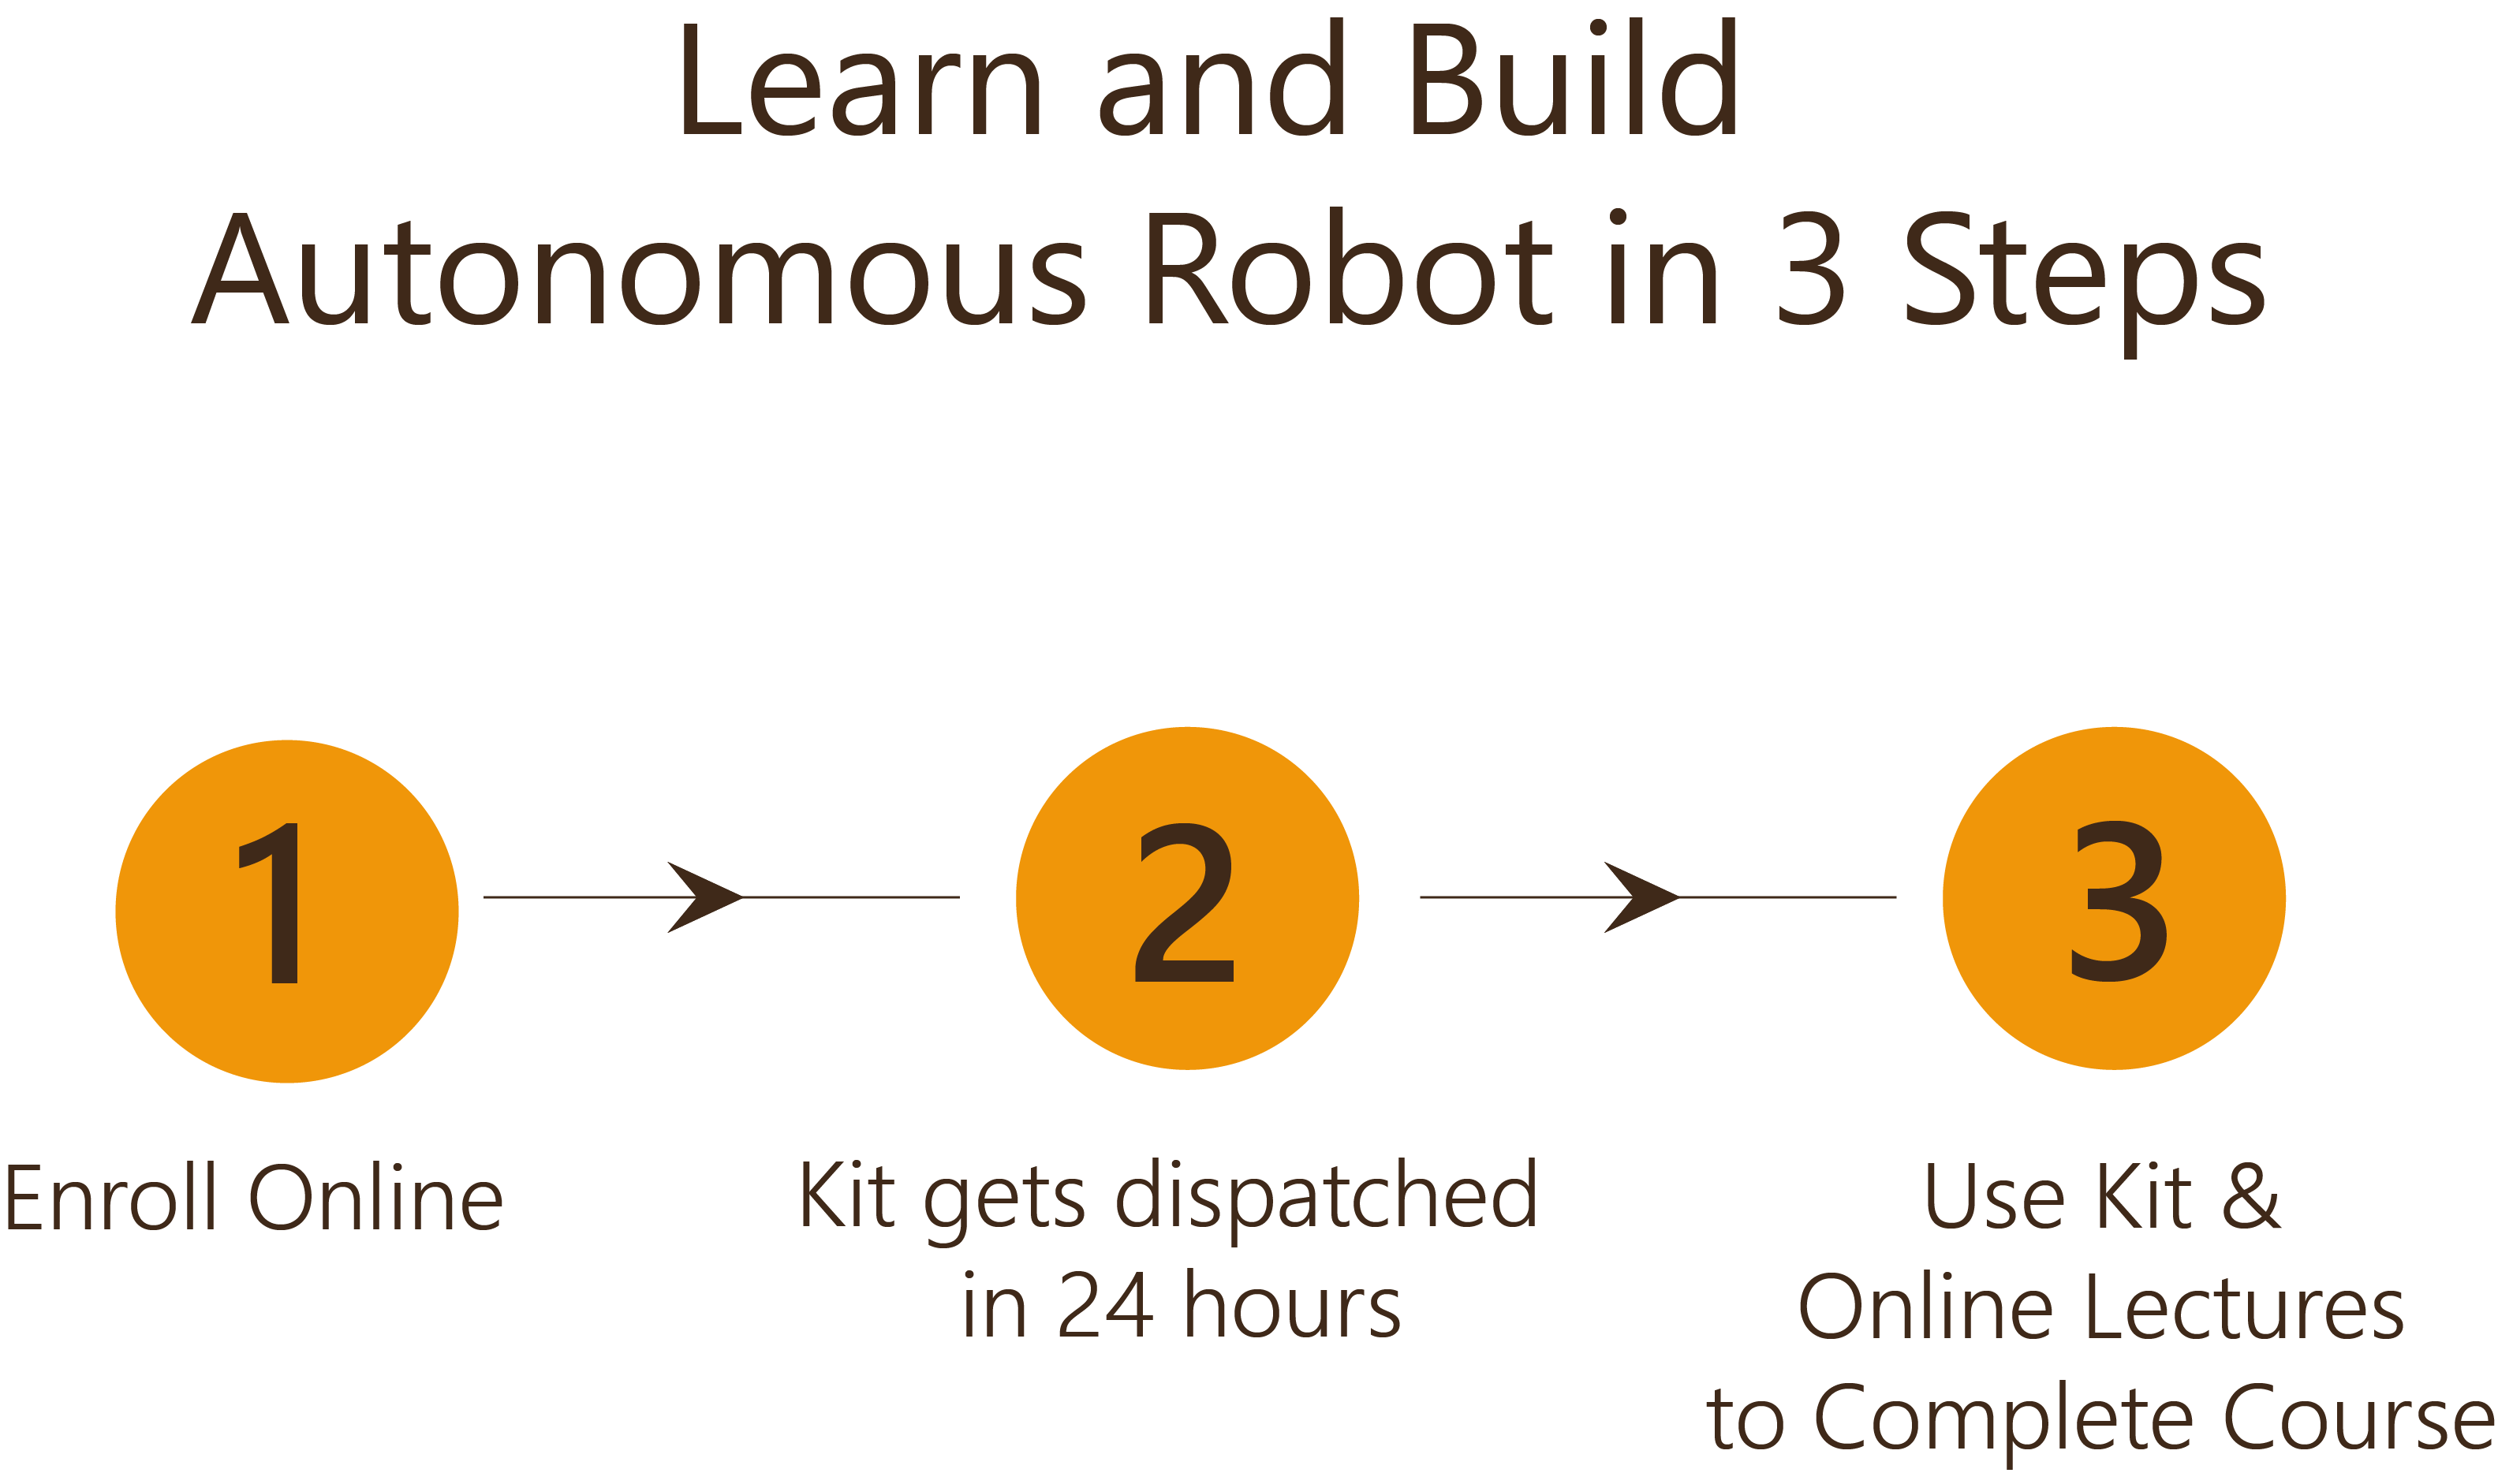 Learn and Build Autonomous Robot in 3 Steps